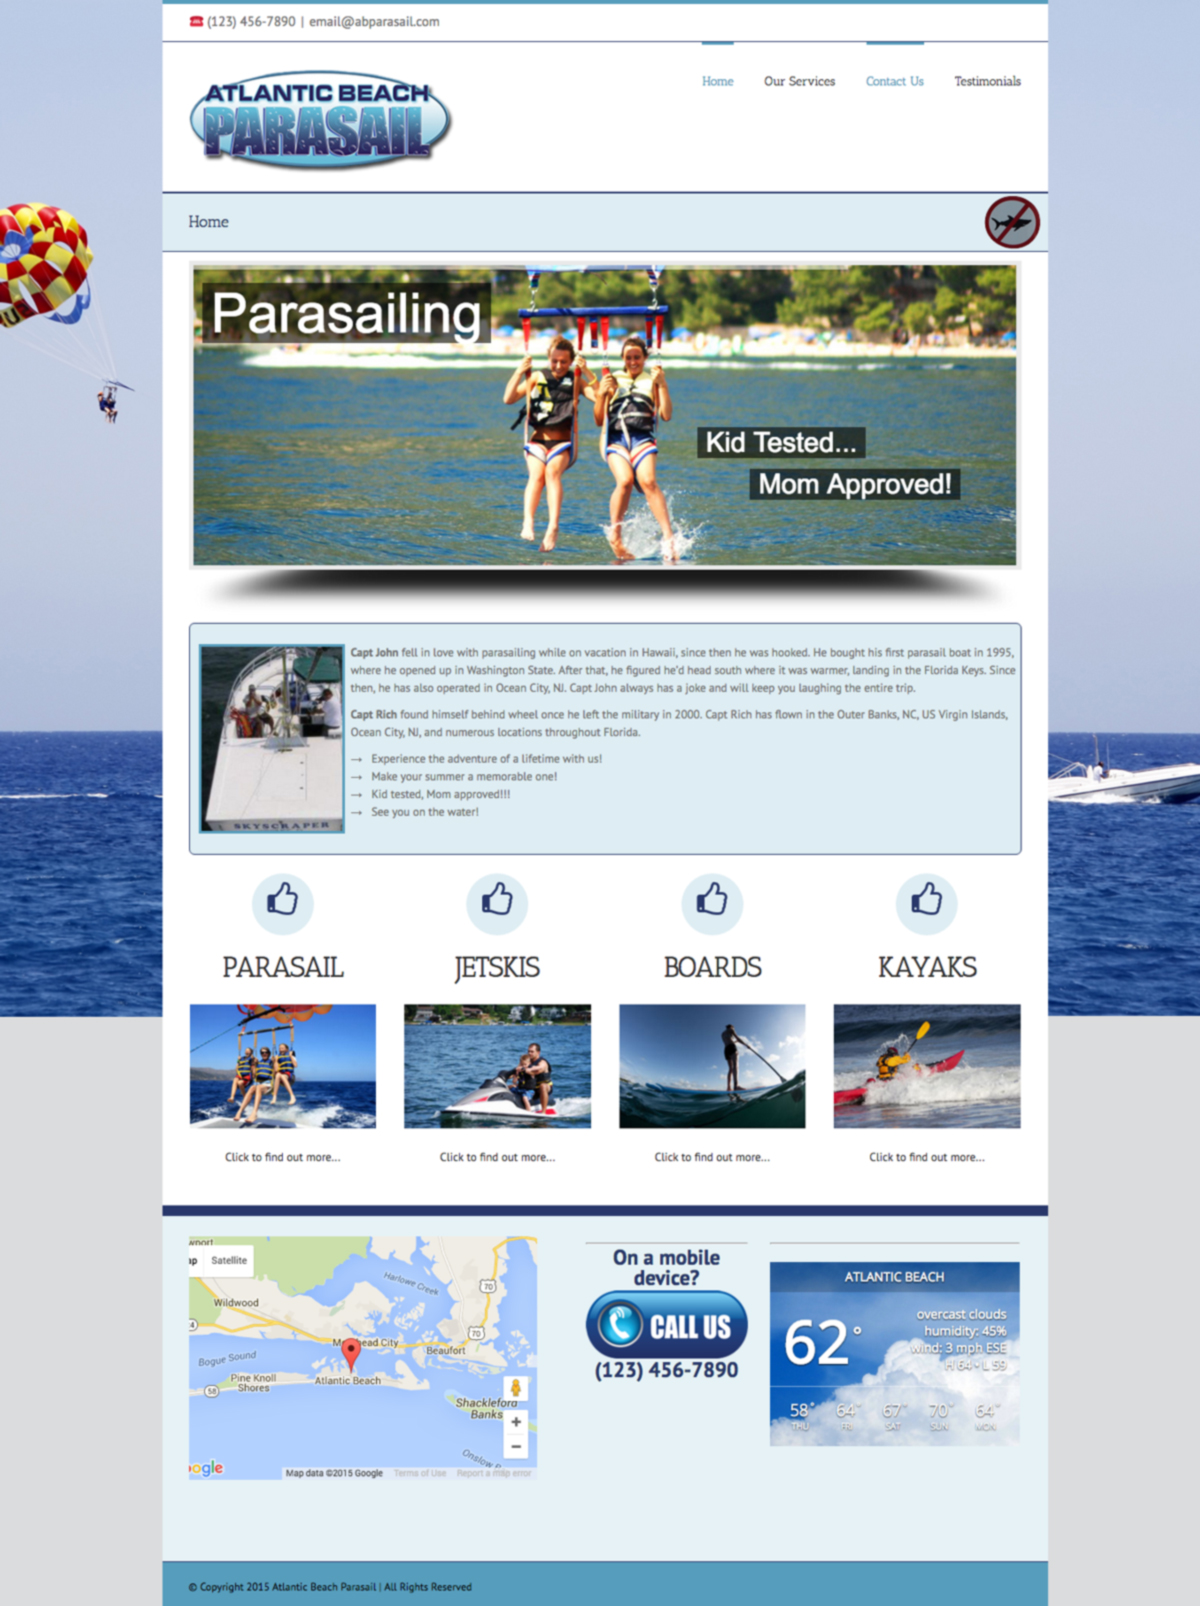 abparasail_screen